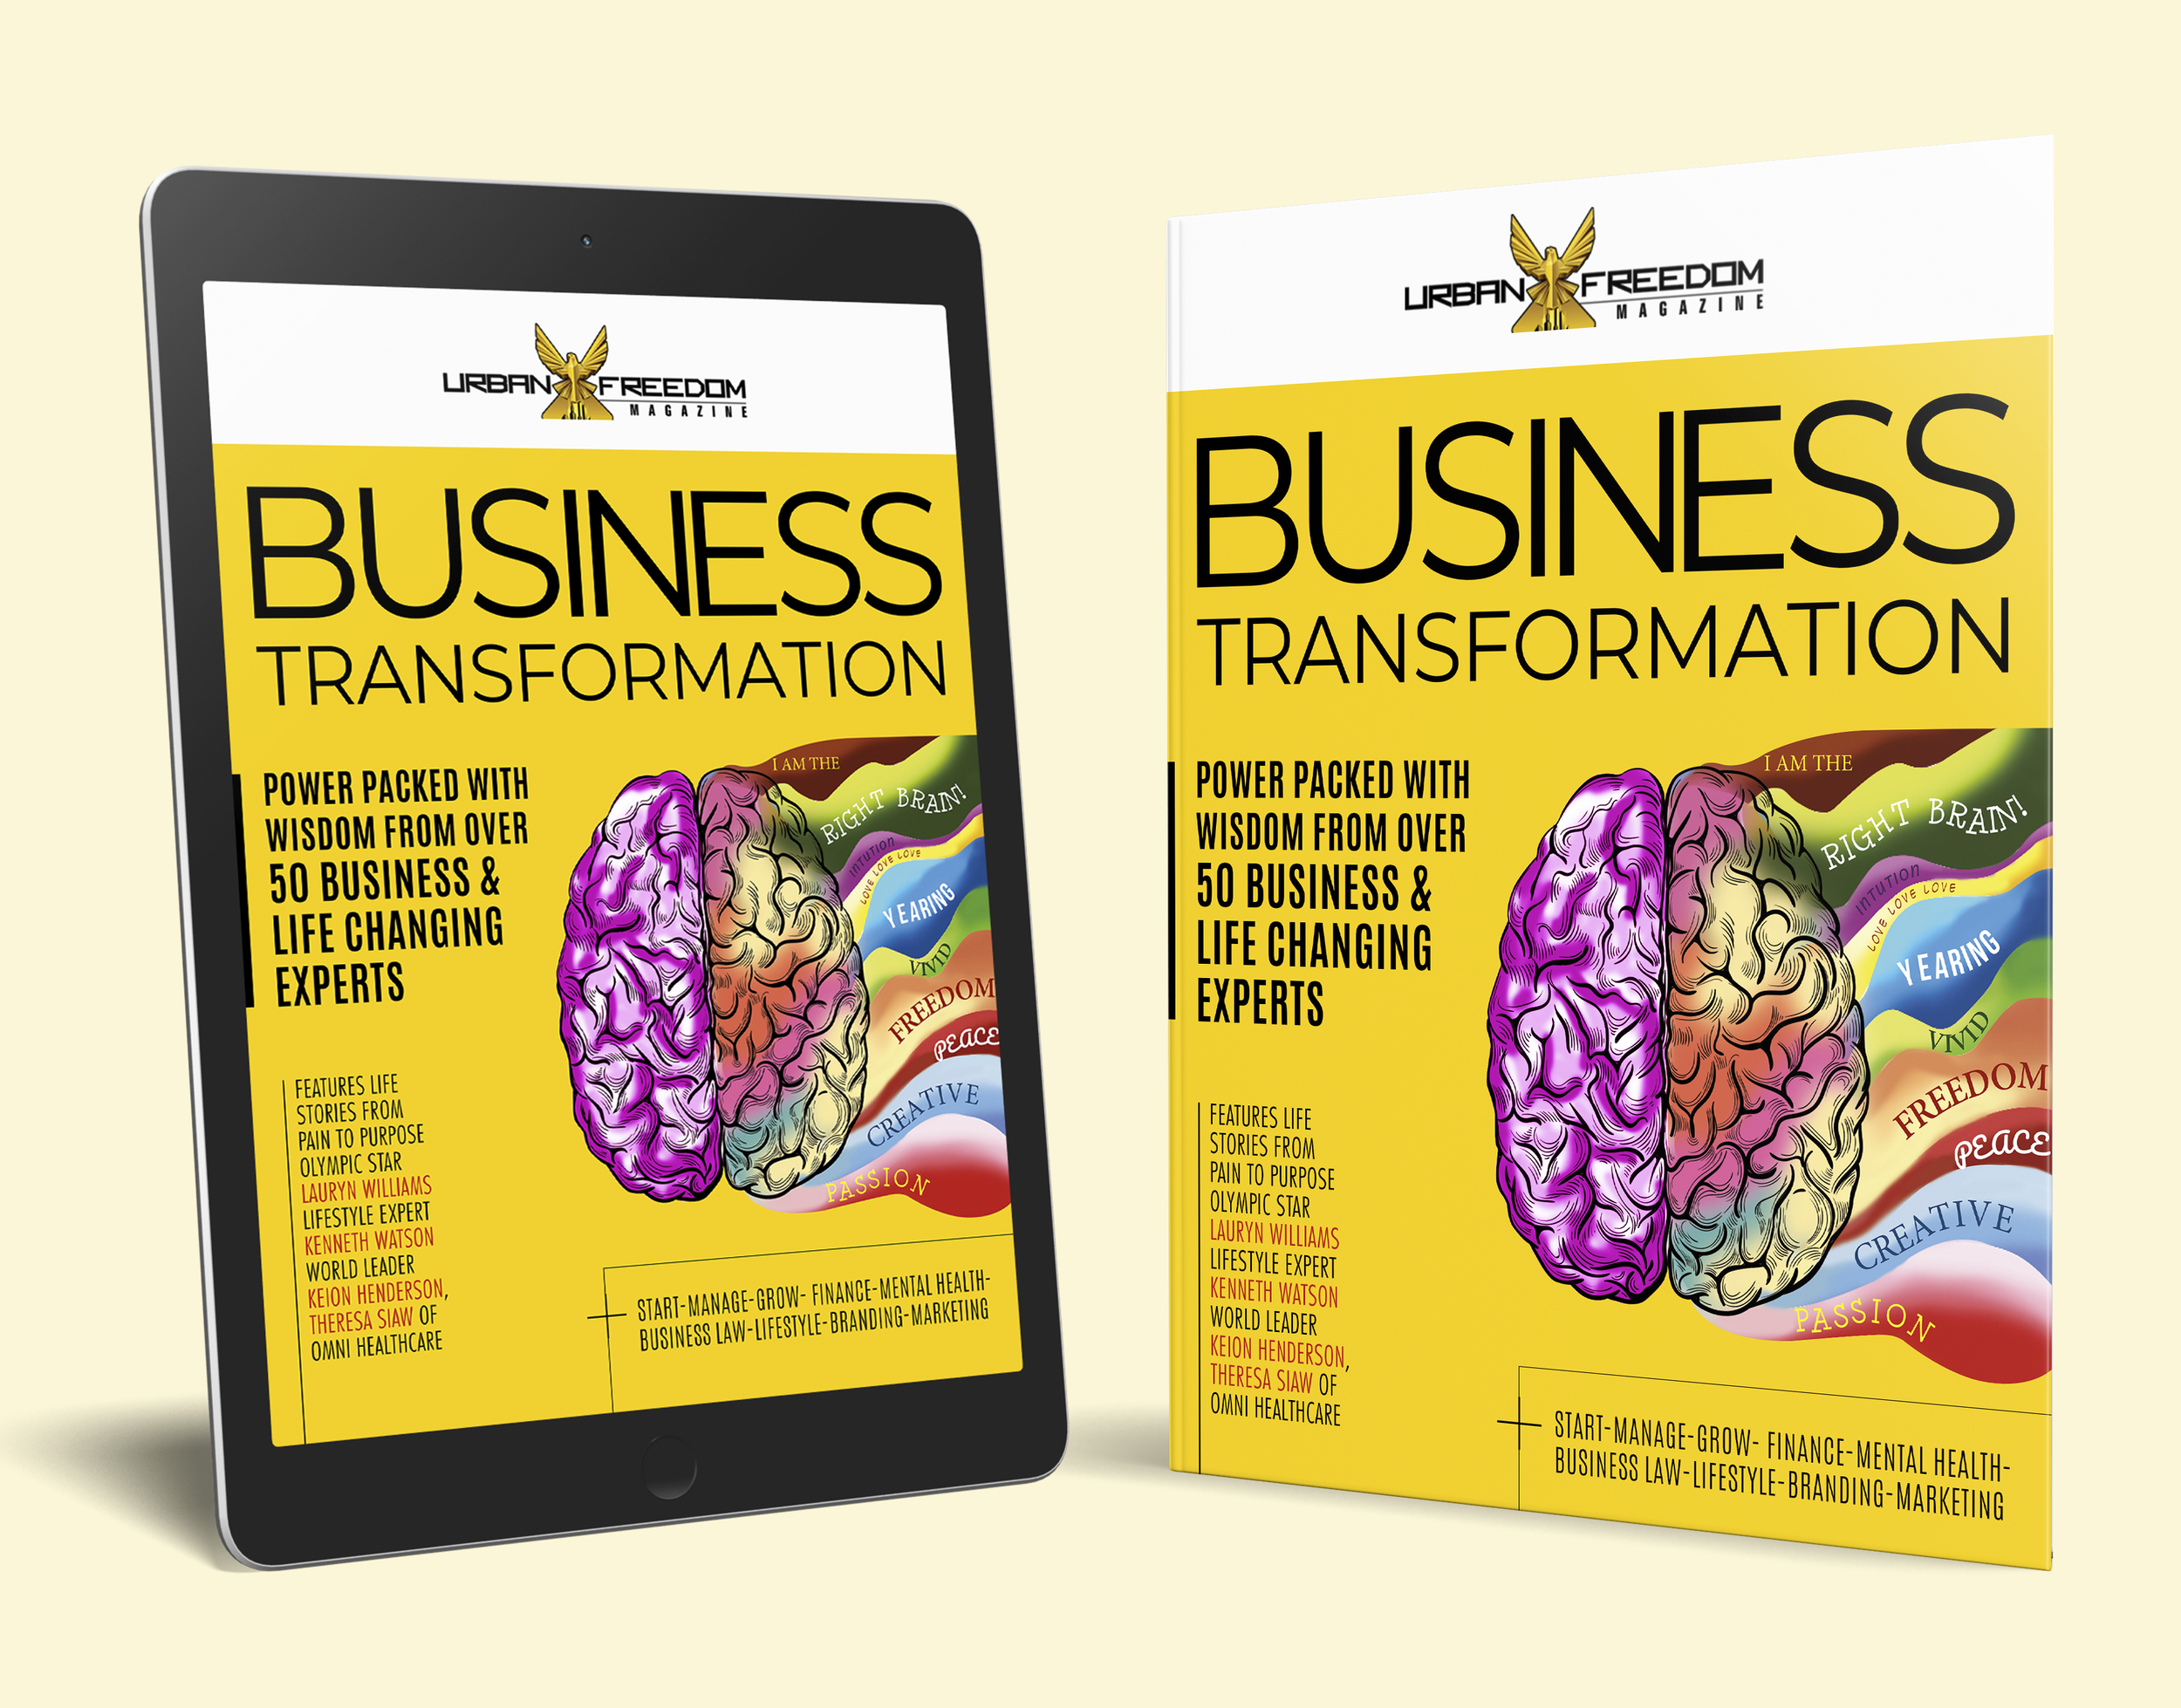 Urban Freedom Magazine Business Transformation Issue Covers.png